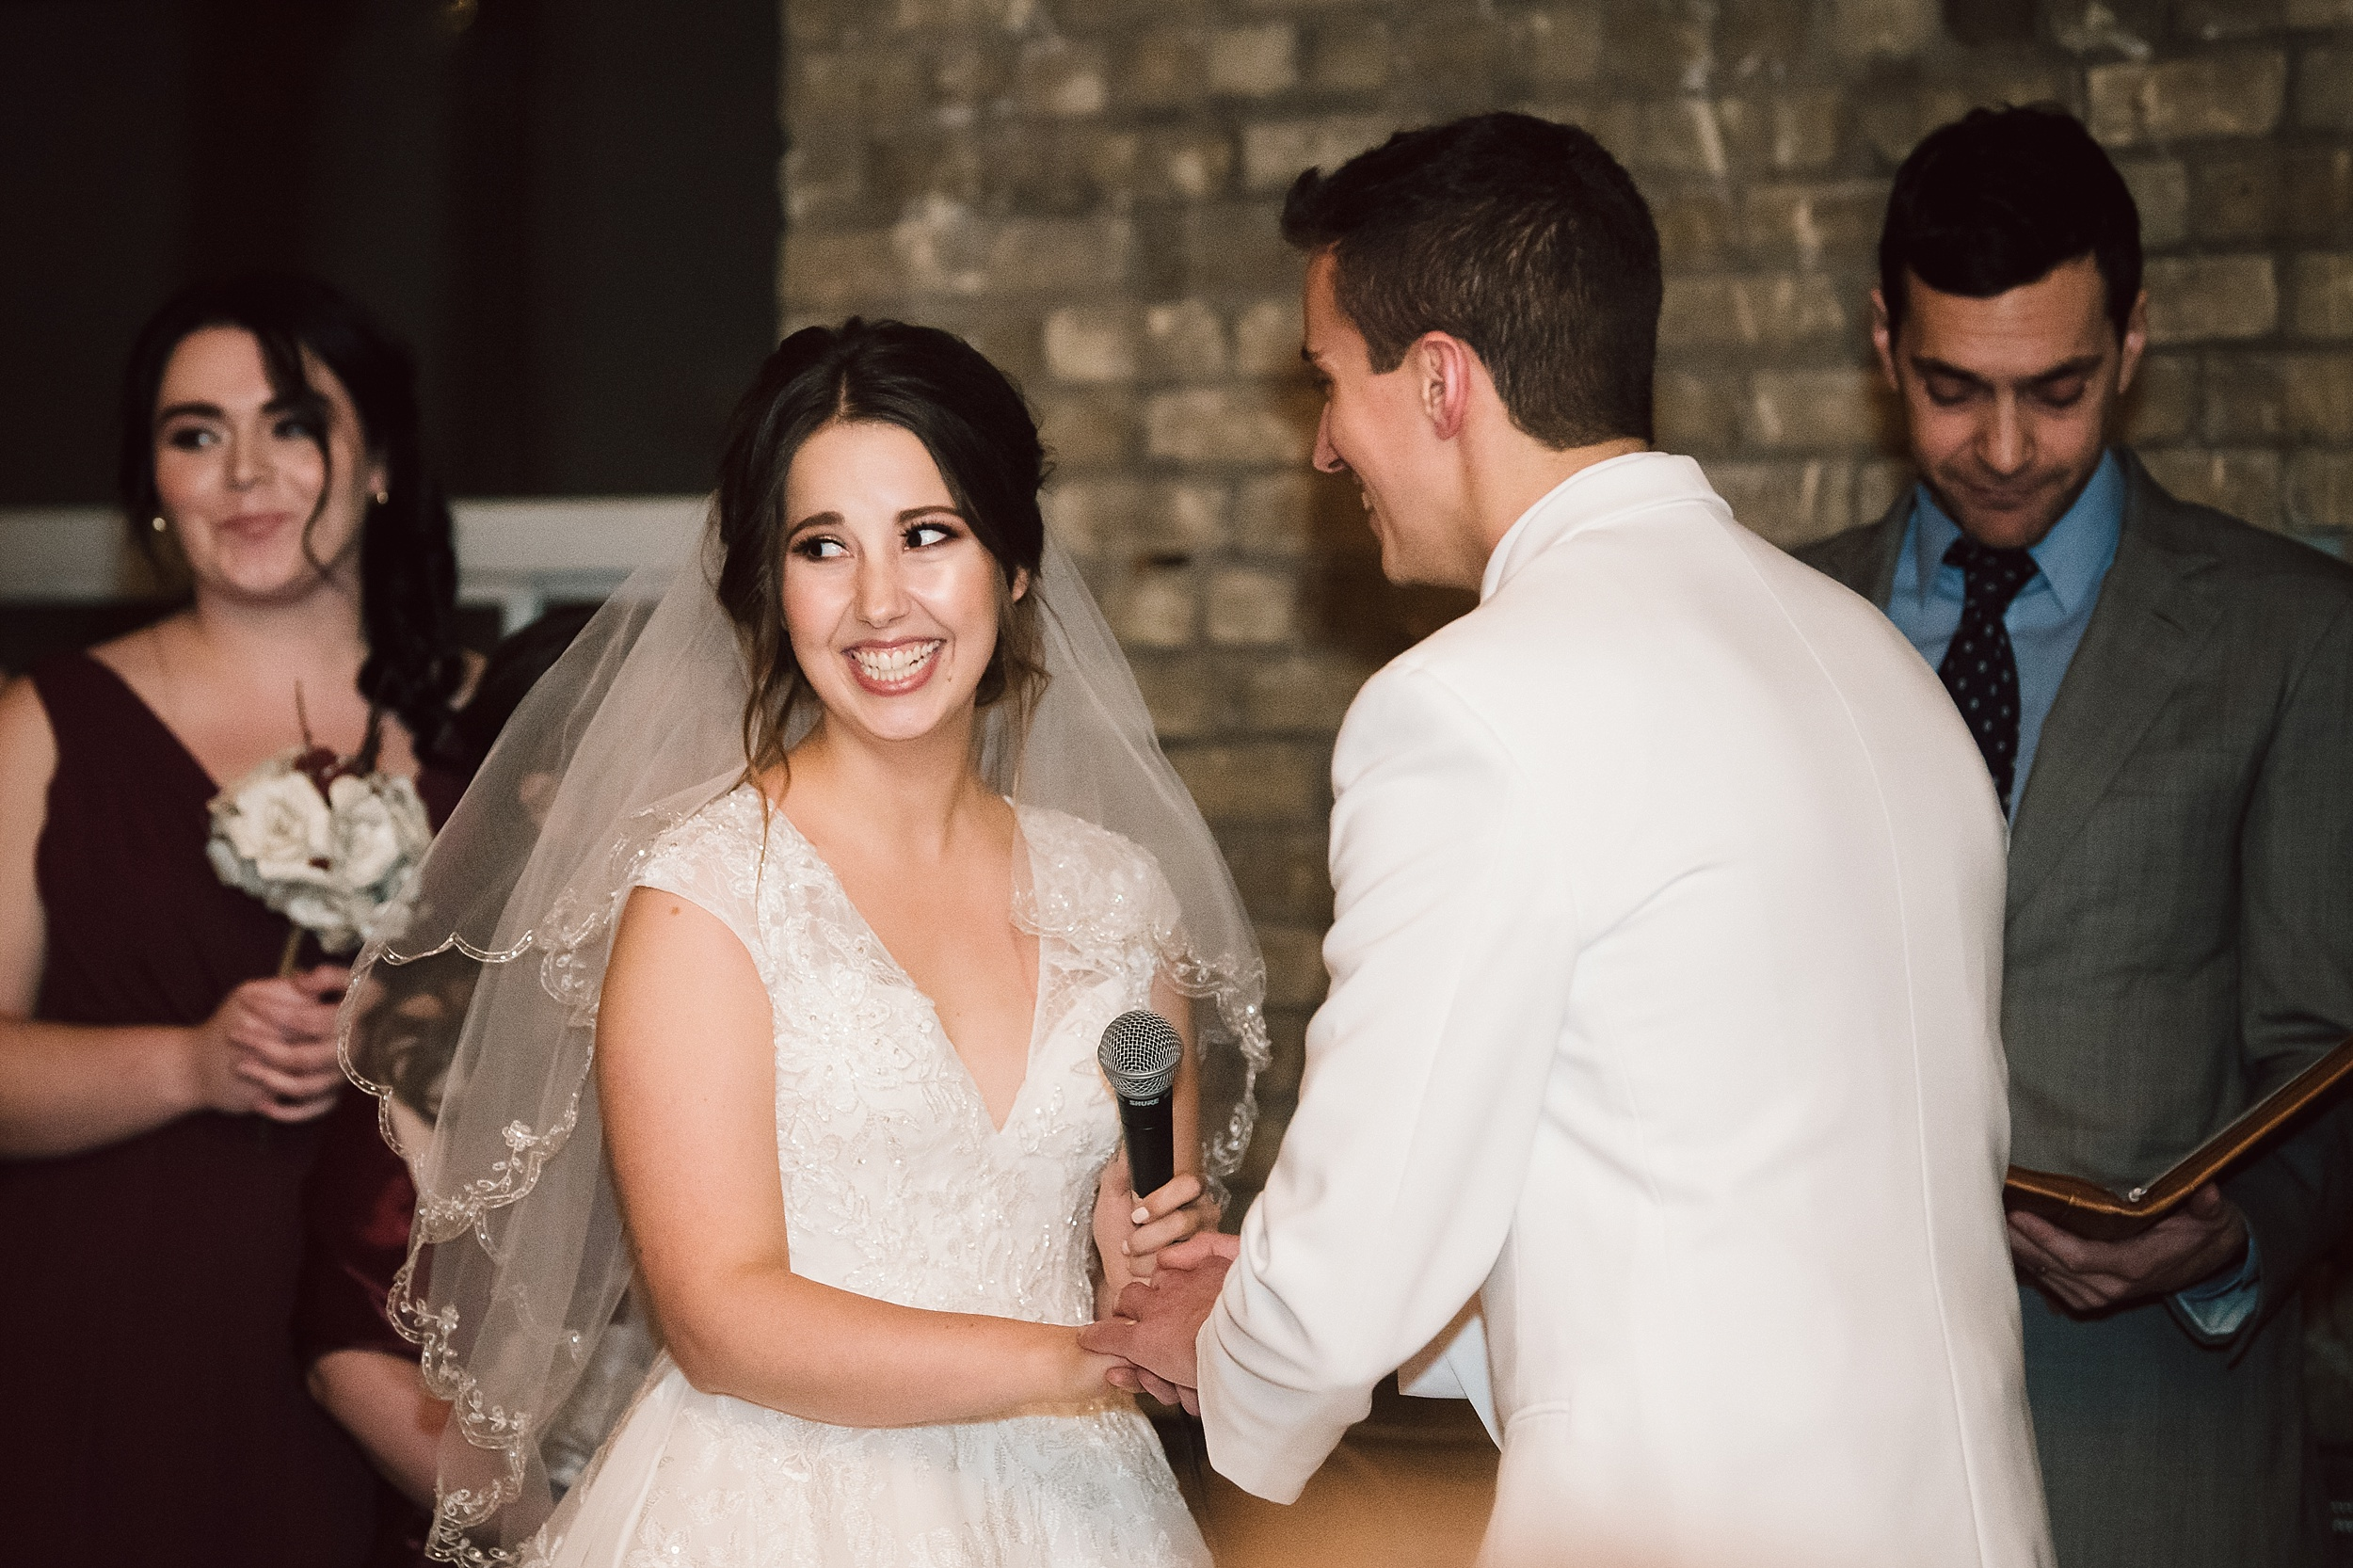 Jam_Factory_Wedding_Toronto_Winter_Wedding_Photographer_0057.jpg